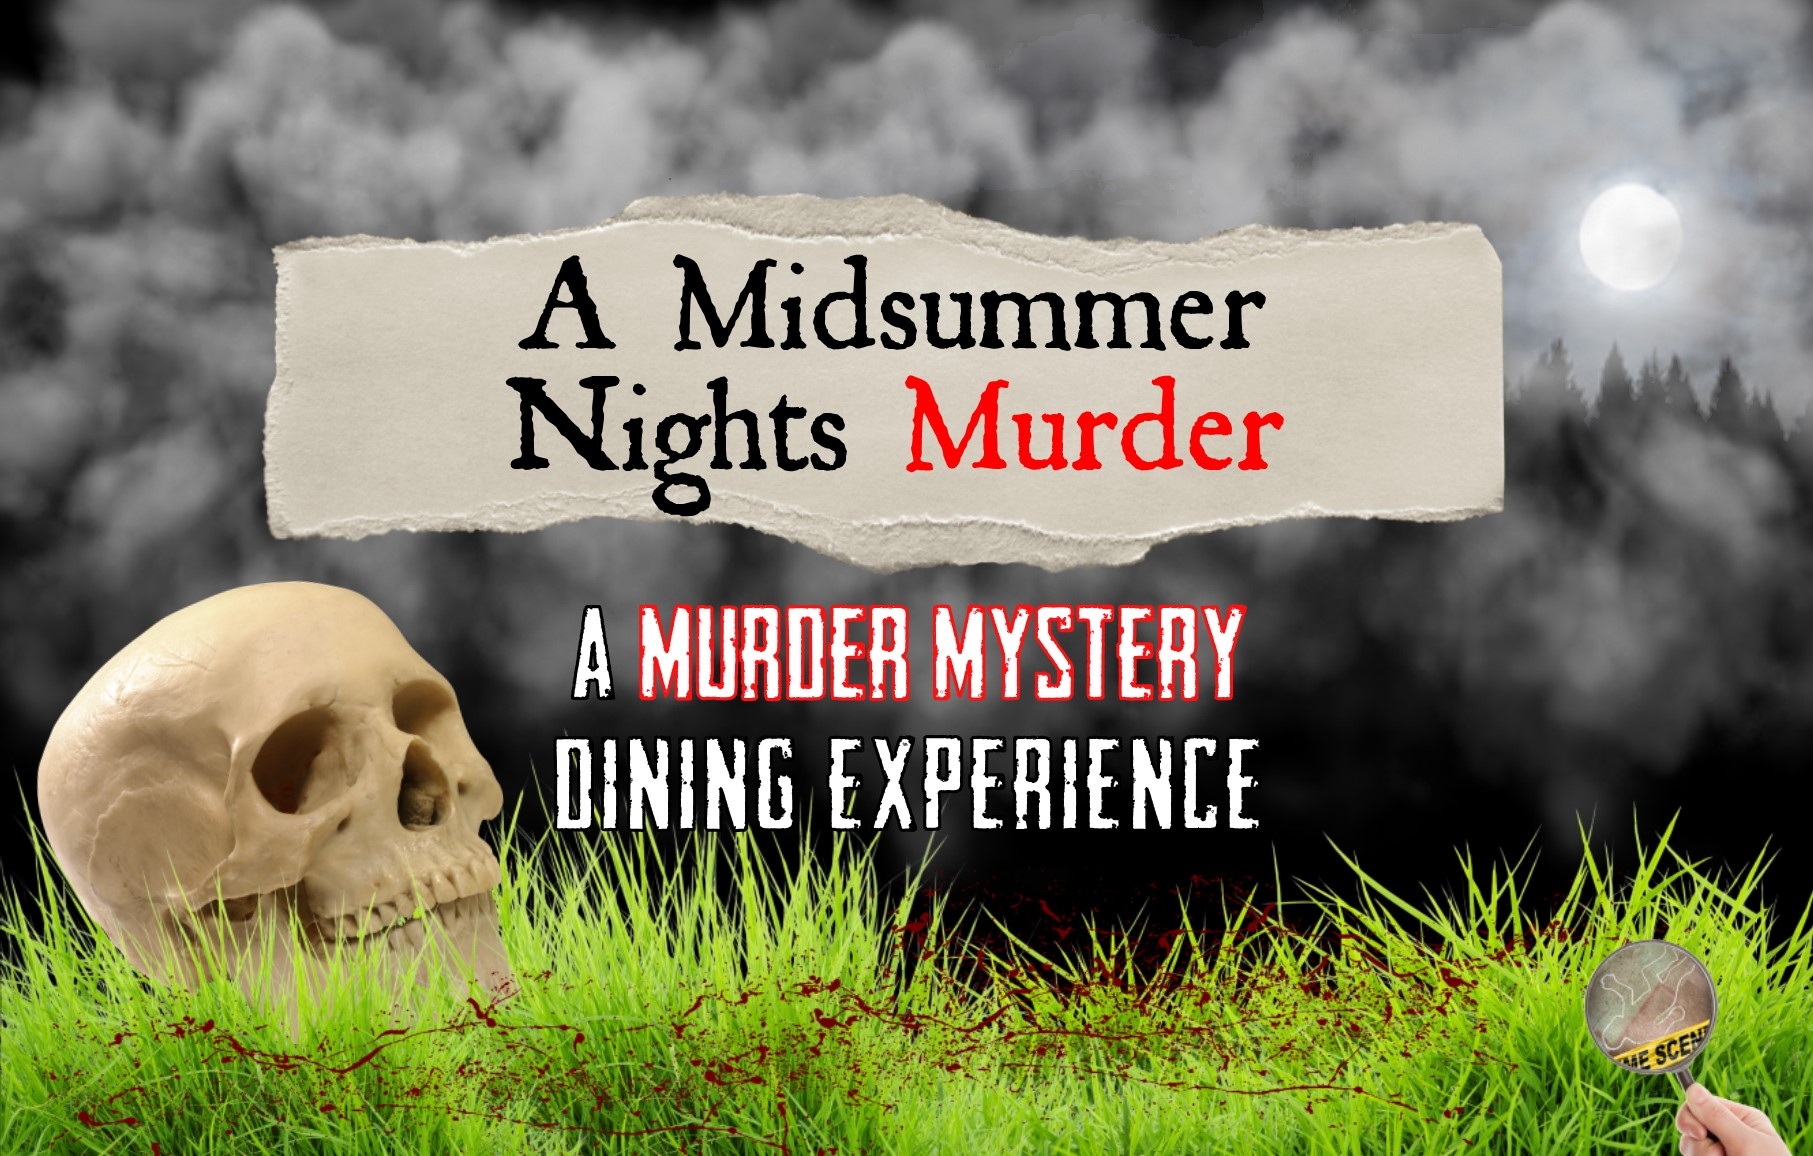 A Midsummer Nights Murder